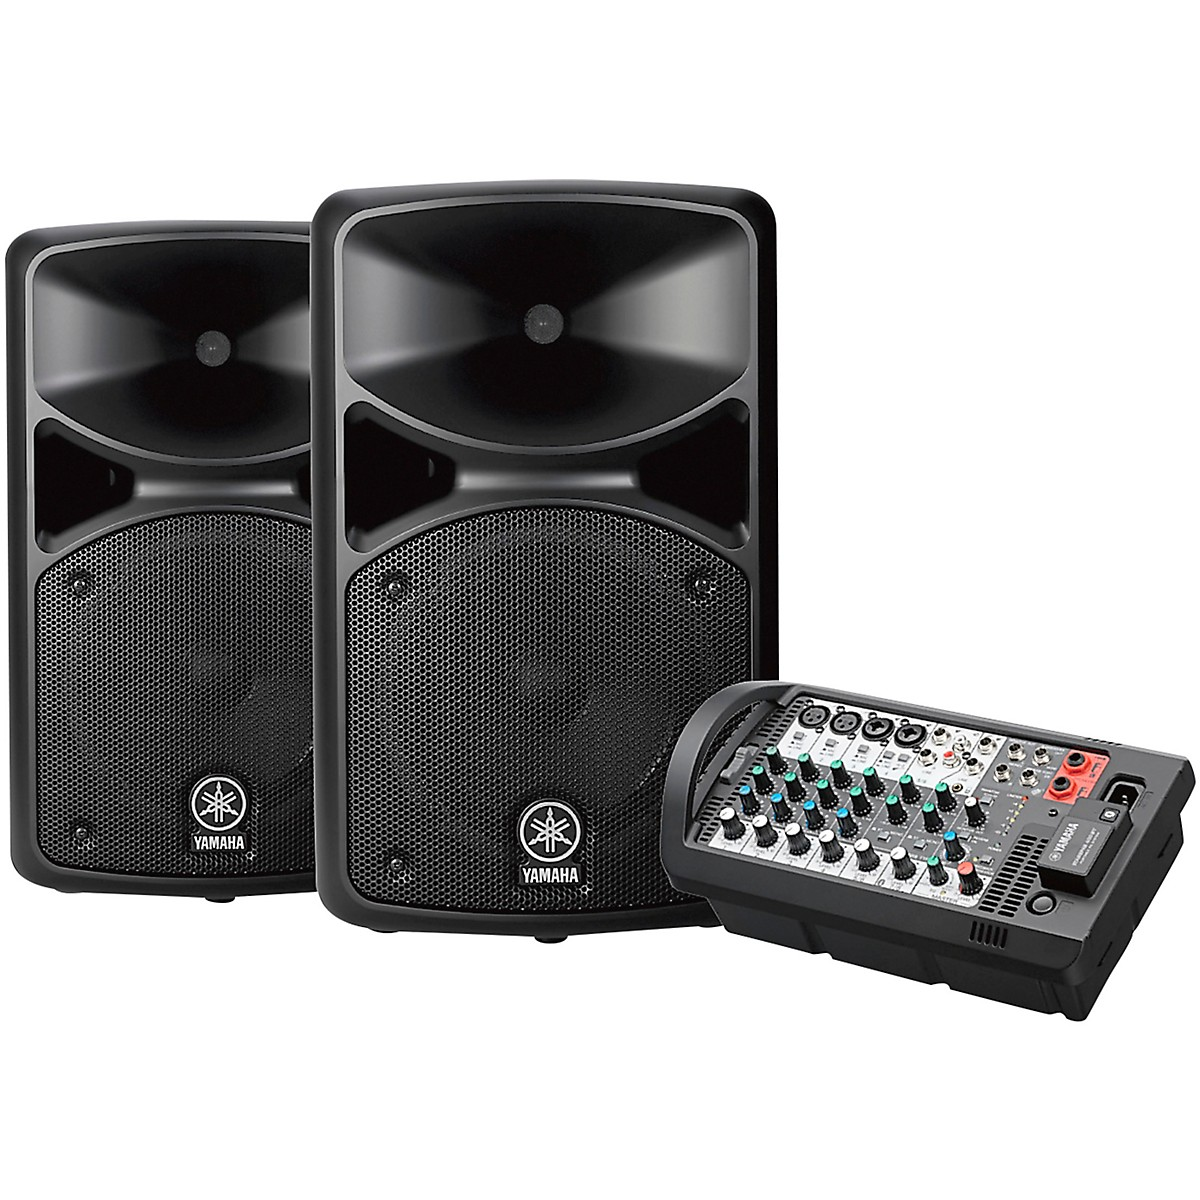 Yamaha STAGEPAS 400BT Portable PA system with Bluetooth